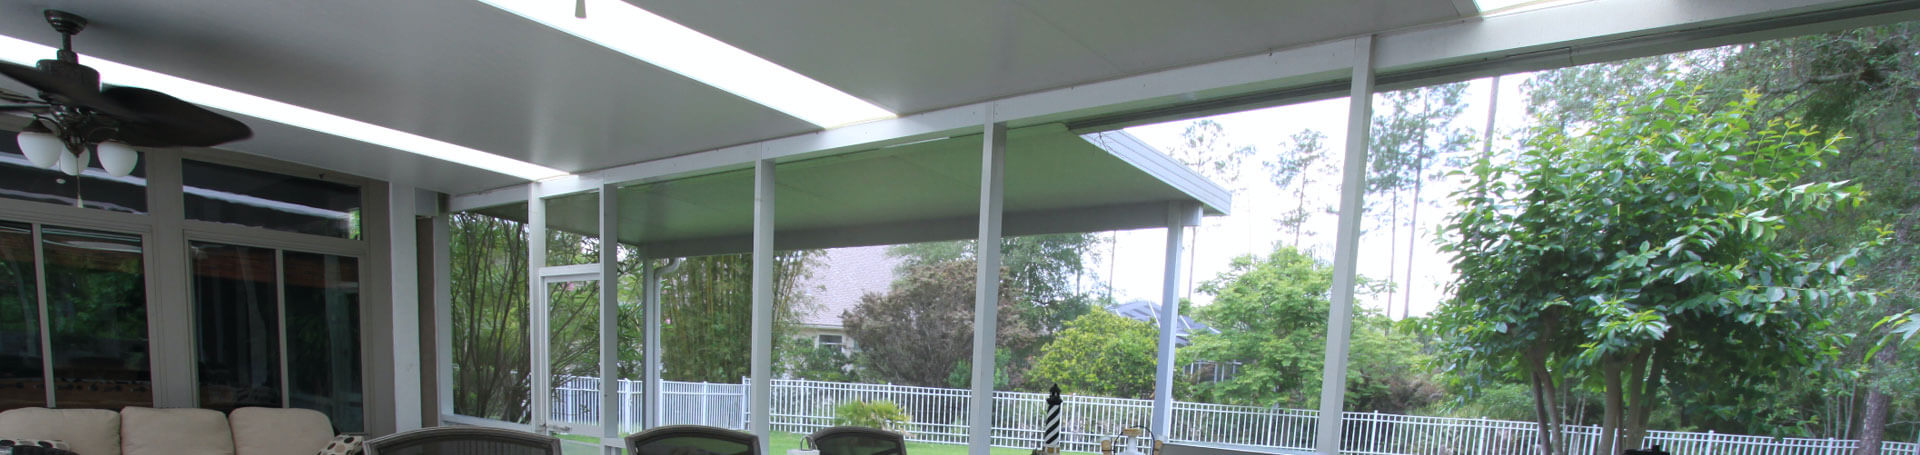 patio covers, carports, and awnings image